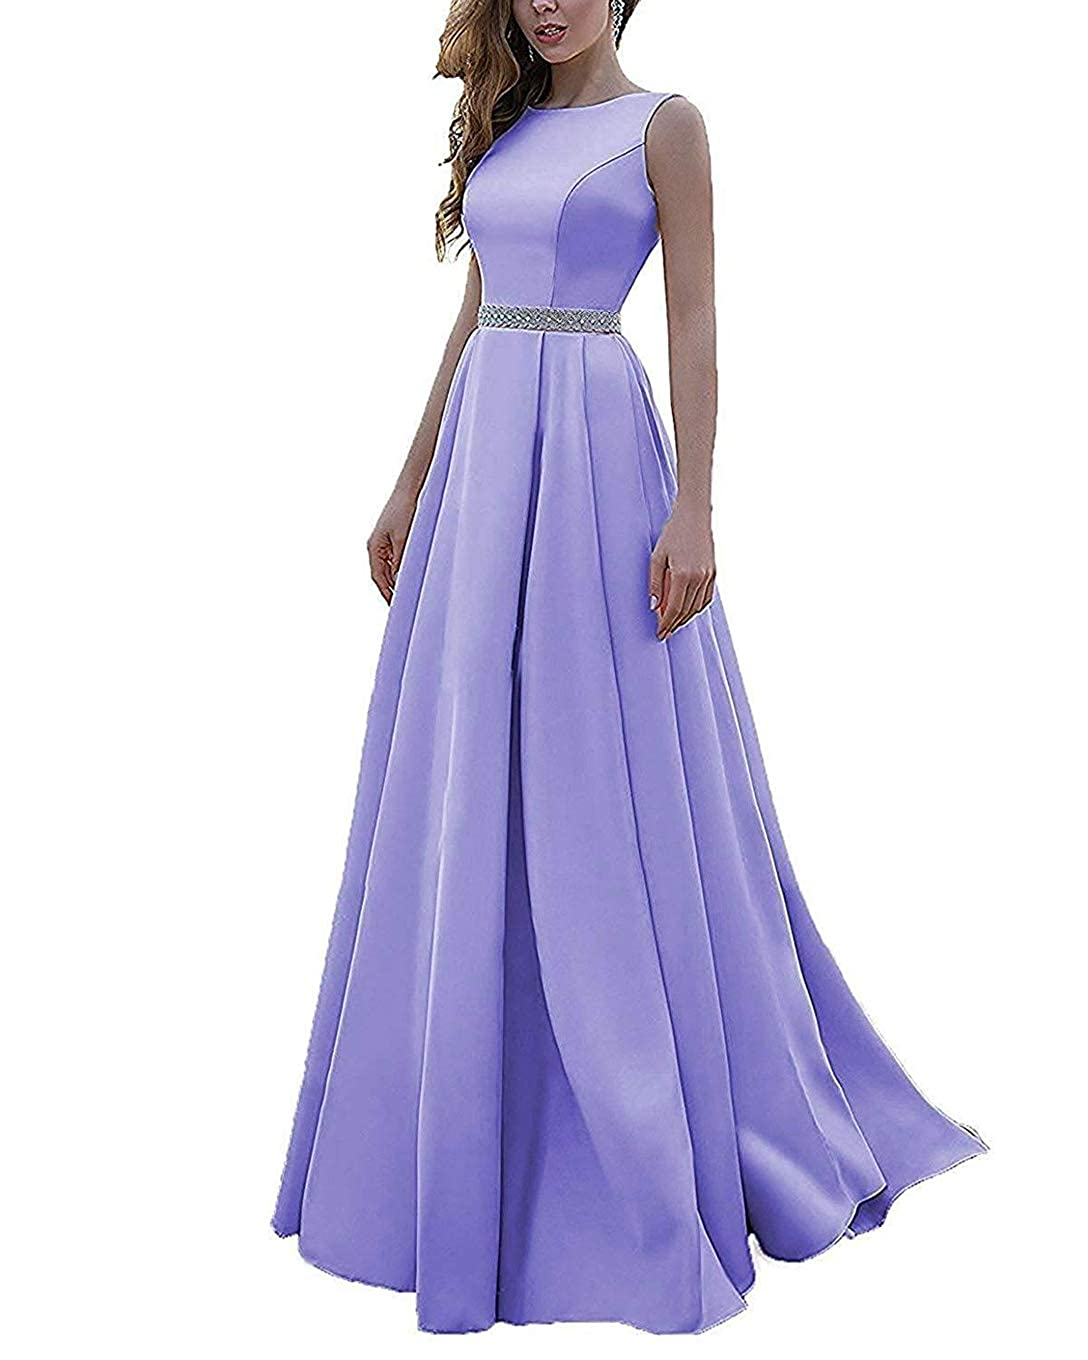 Lavender Beaded Satin Prom Dresses Long with Pockets Jewel Neckline Princess Ball Gown